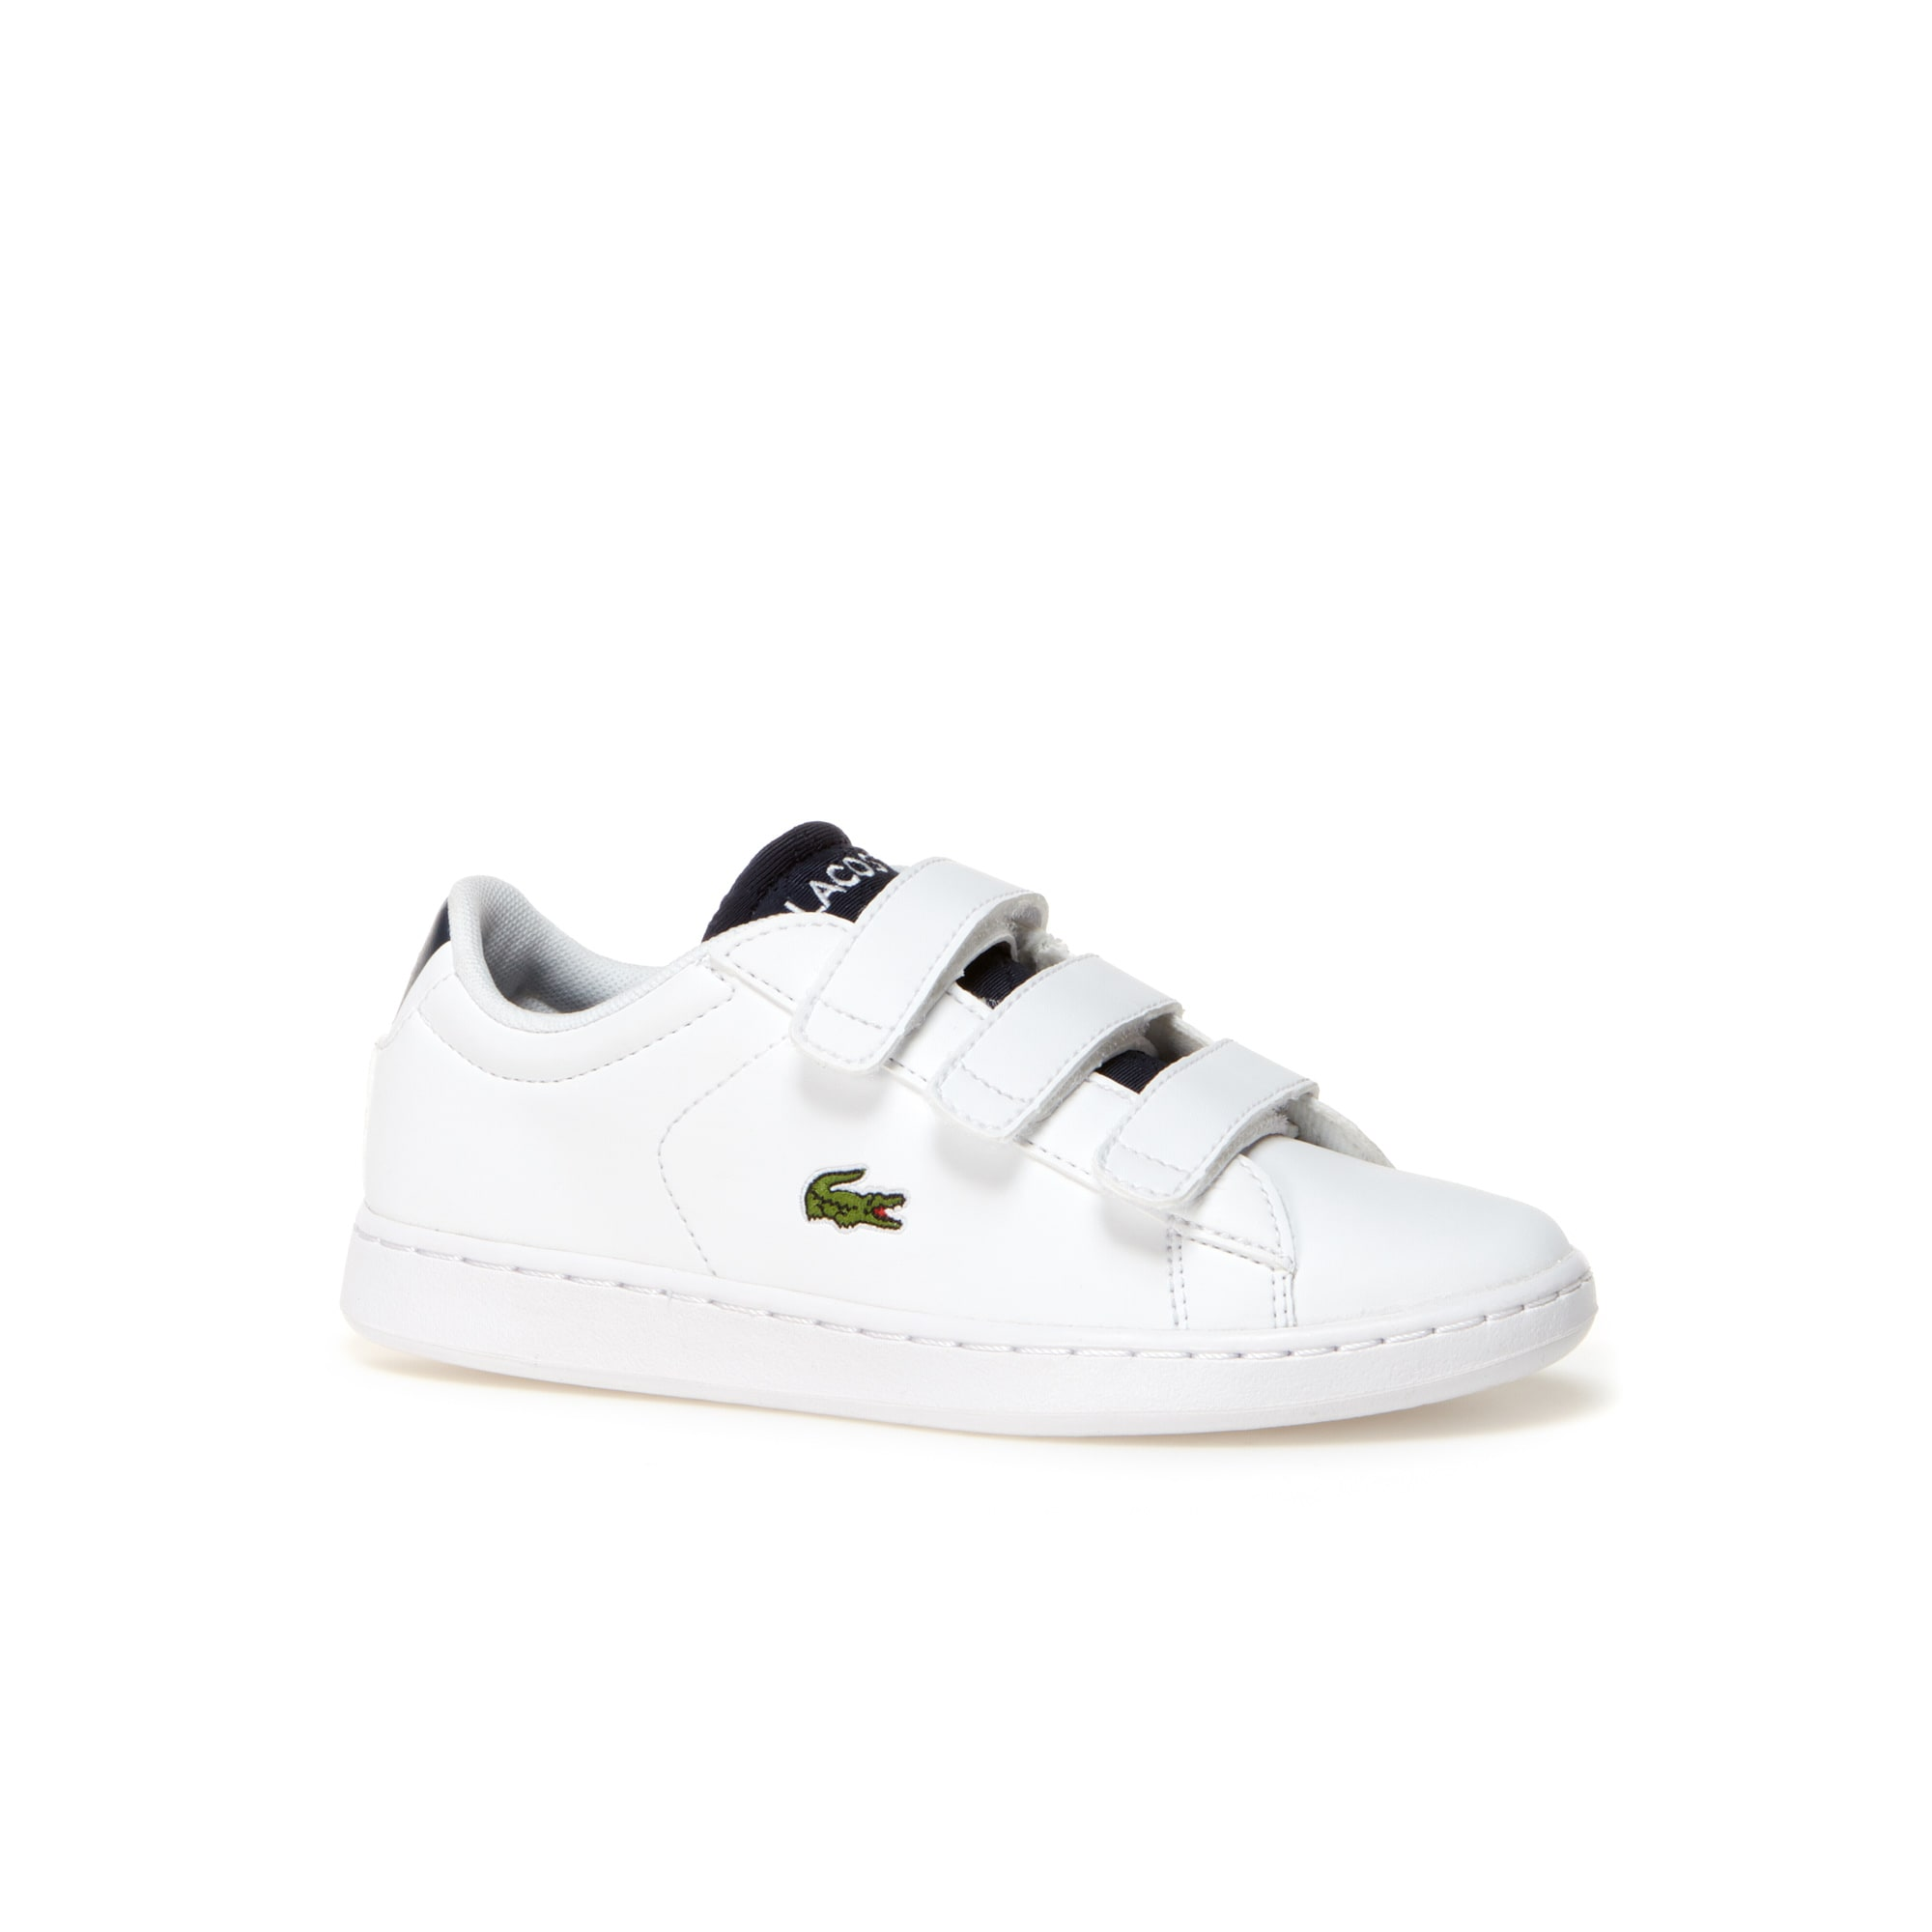 Kids' Carnaby Evo Trainers